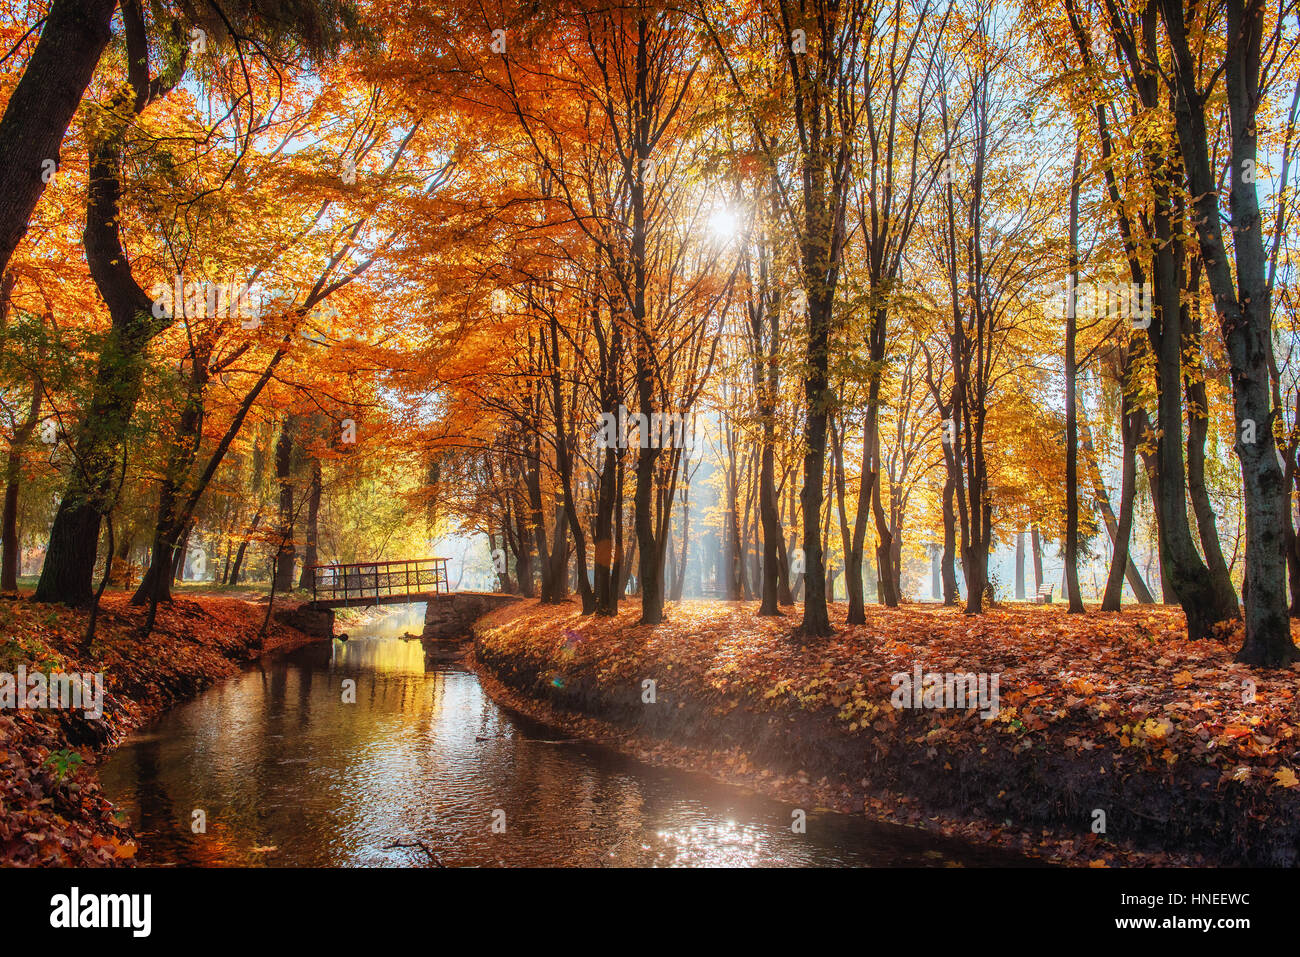 Walk way bridge over river with colorful trees - Stock Image